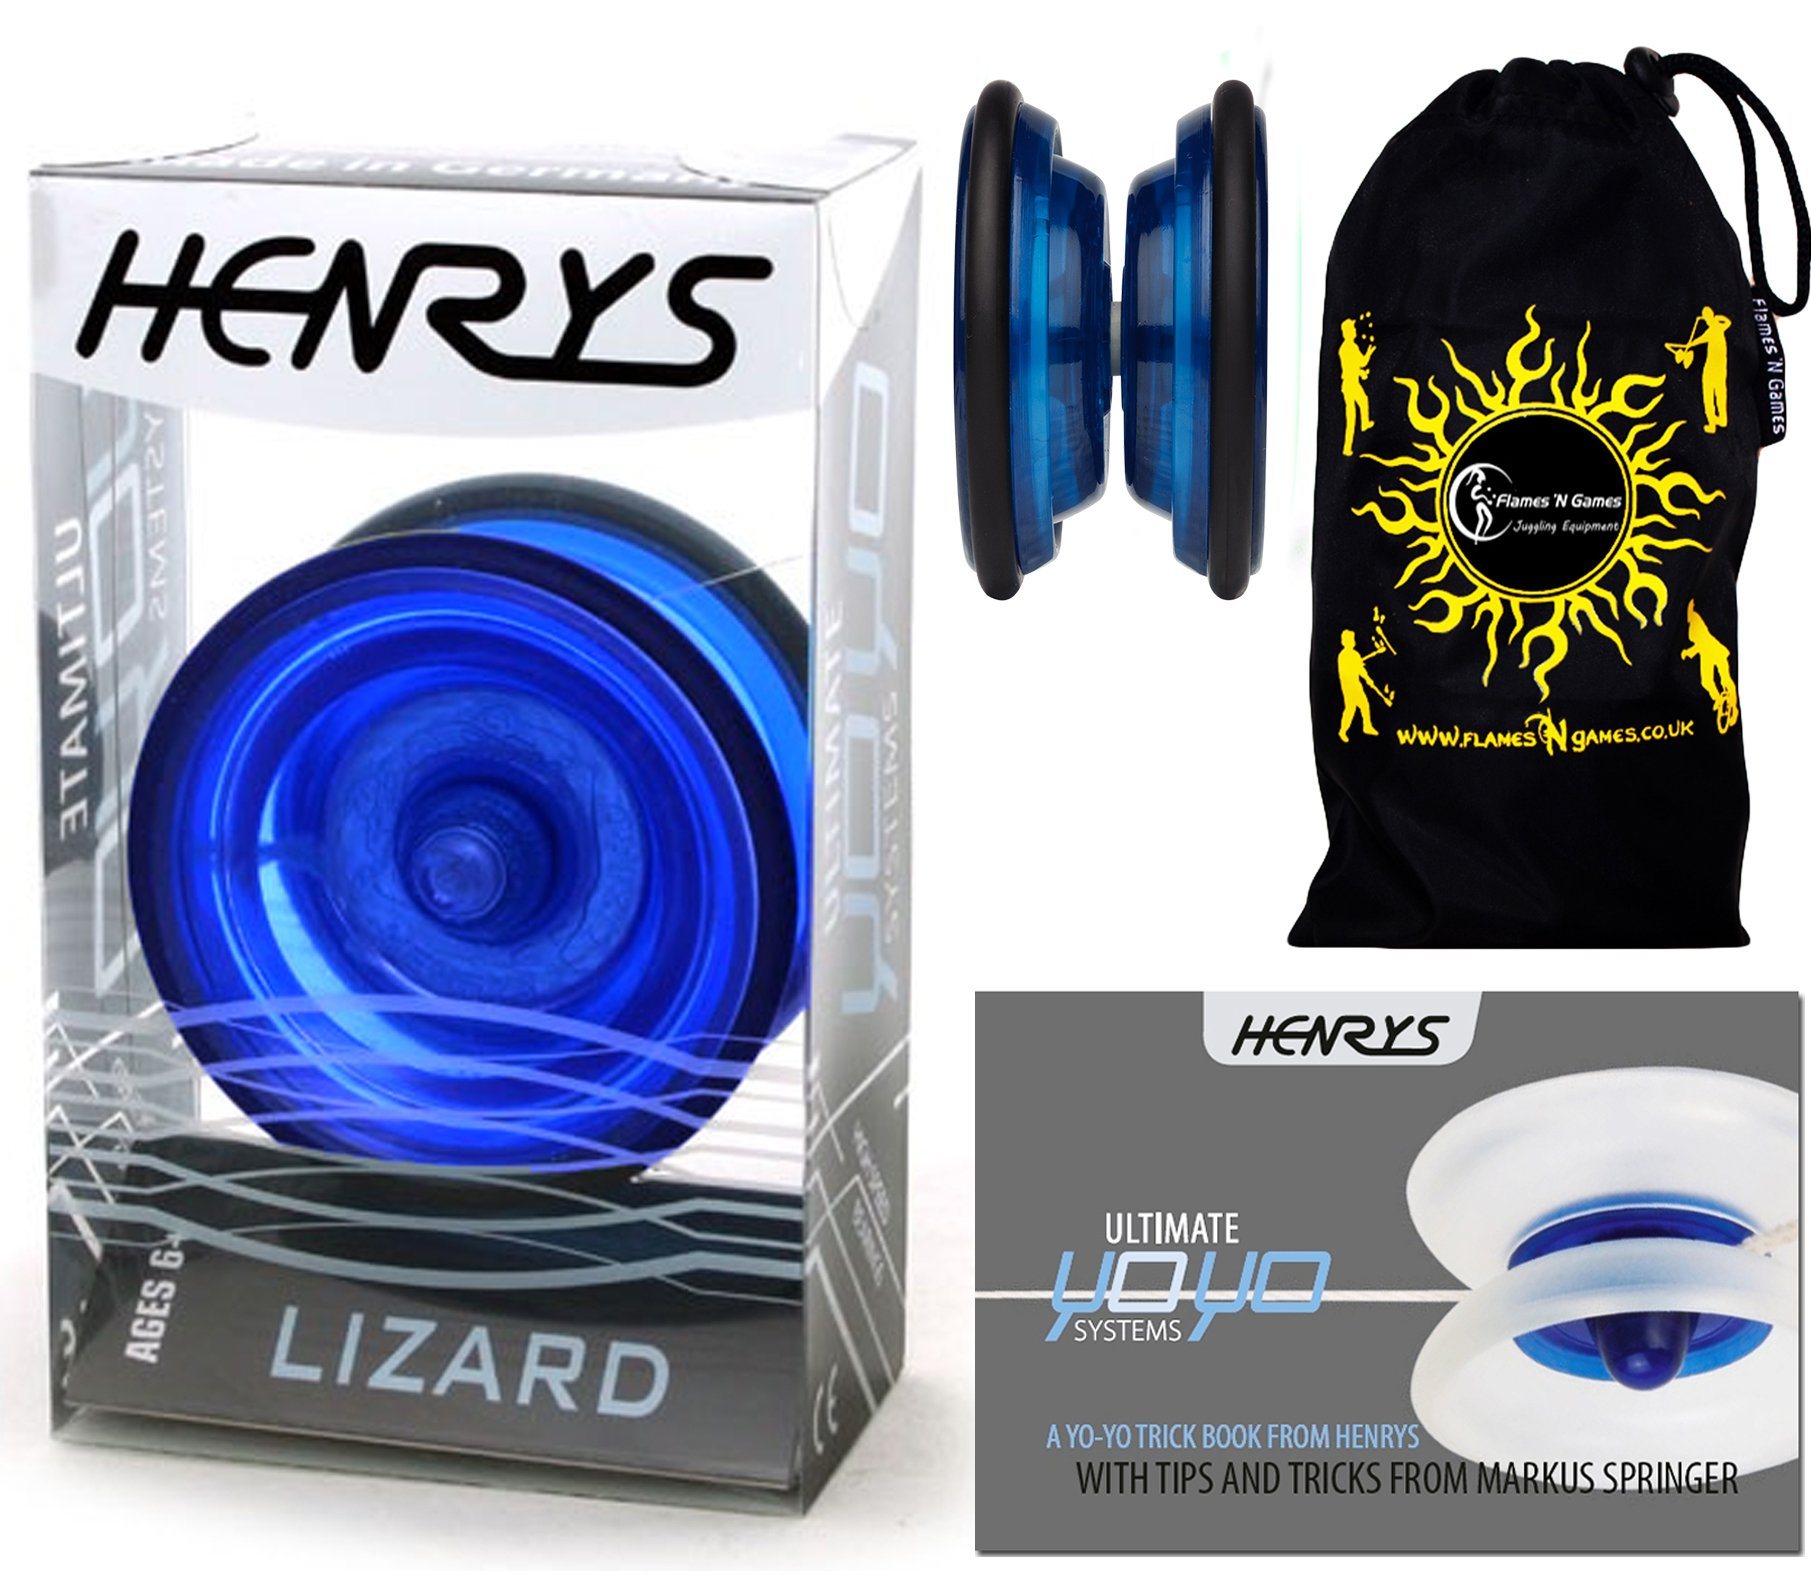 Henrys LIZARD YoYo (Blue) Professional Entry-Level YoYo +Instructional Booklet of Tricks & Travel Bag! Pro YoYos For Kids and Adults!